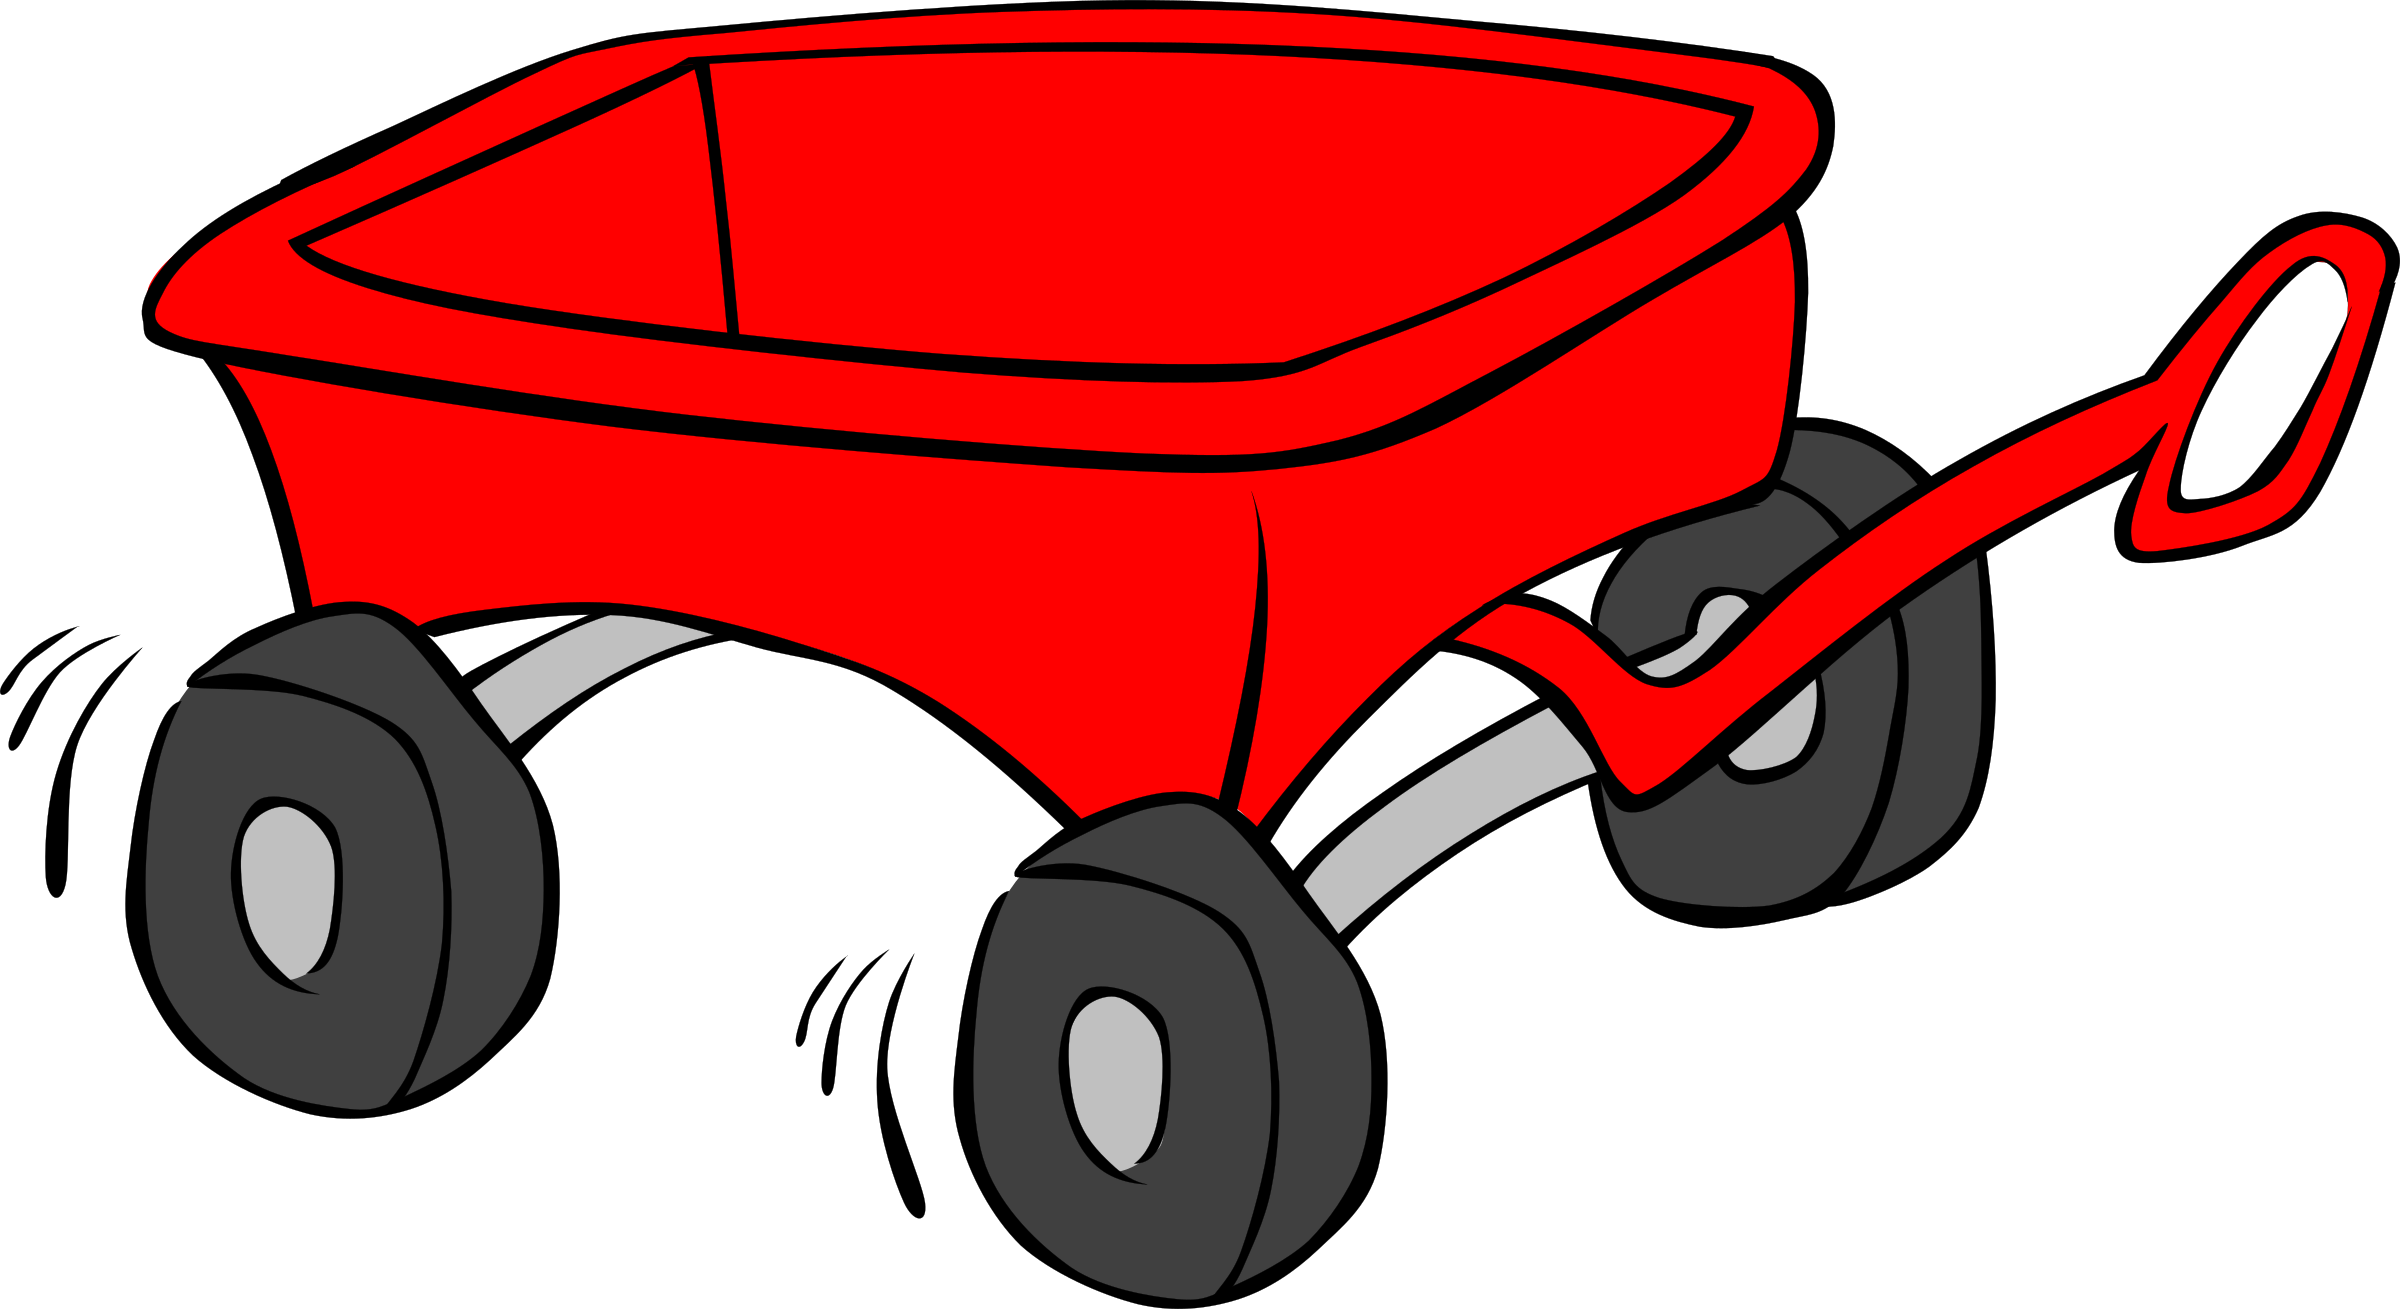 clip art library Kids wagon big image. Carriage clipart animated.